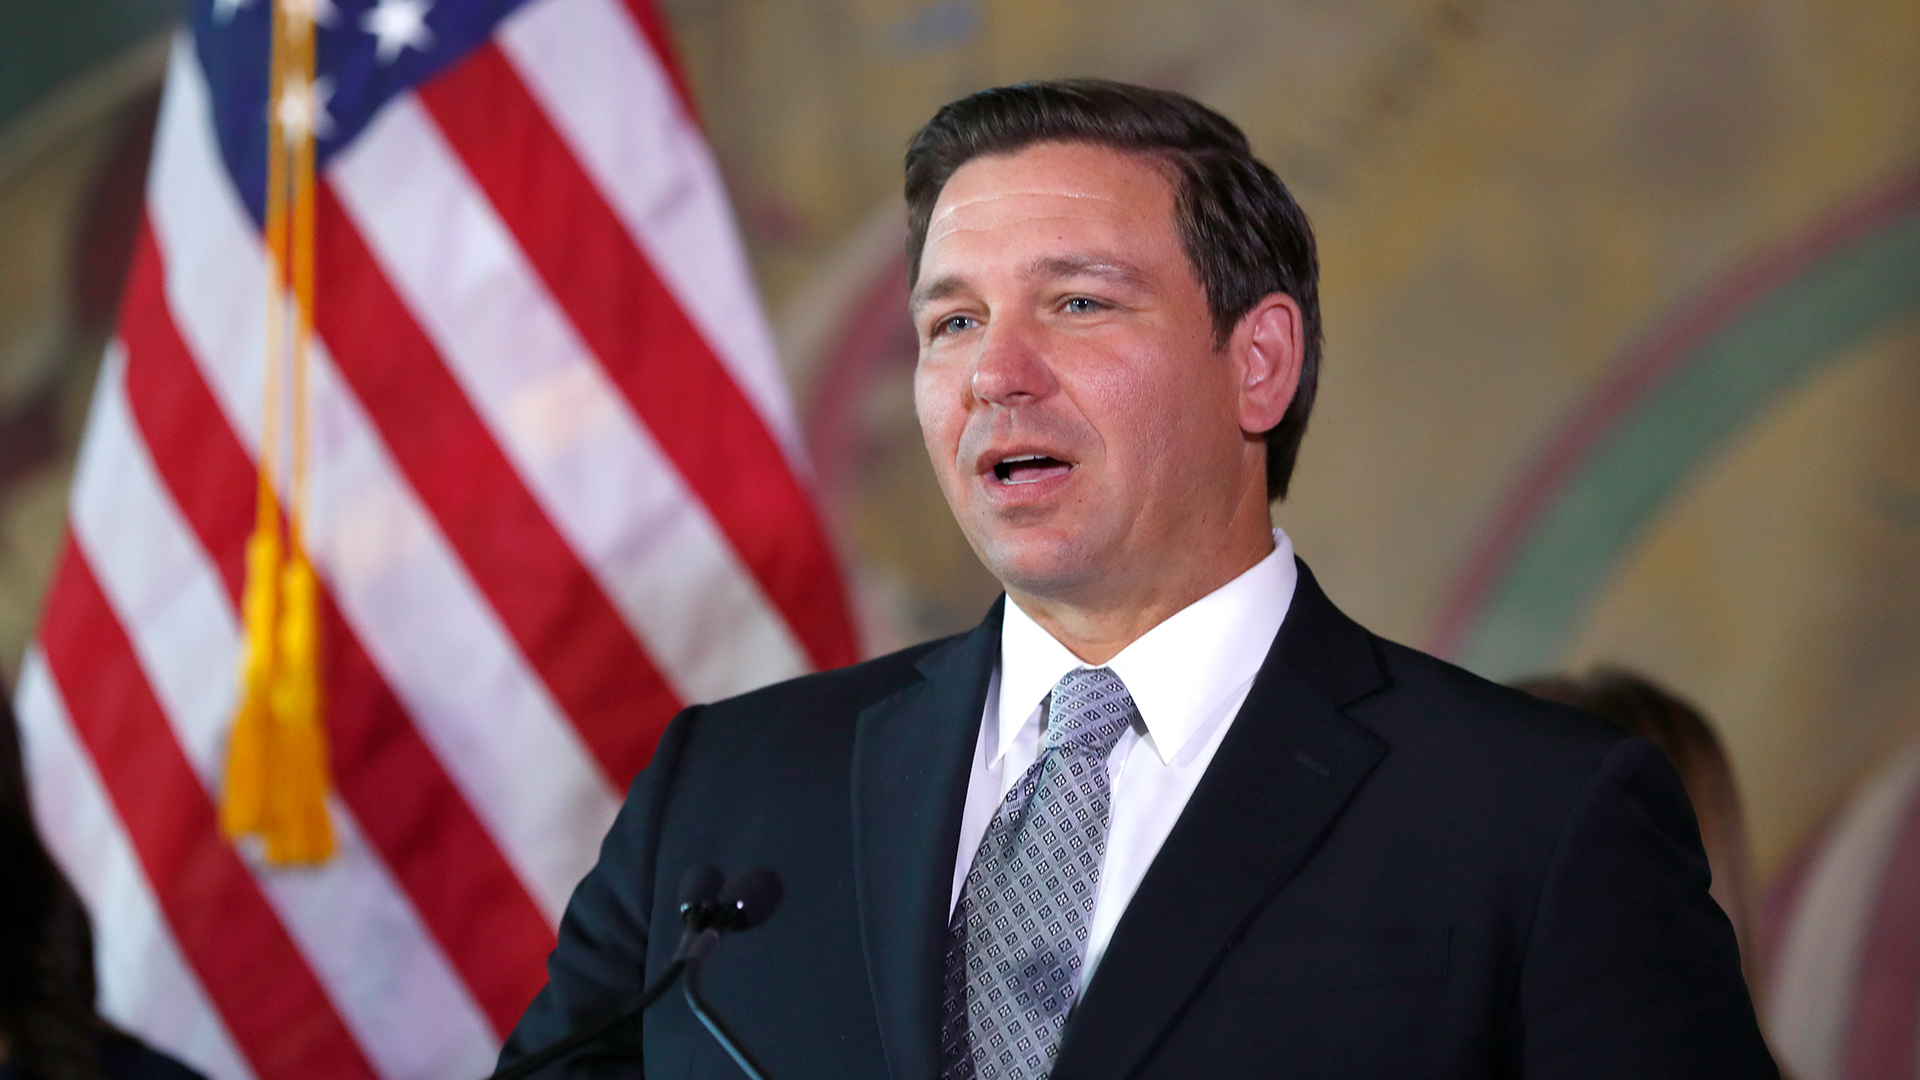 Gov. DeSantis extends eviction ban, but not for everyone | WFLA